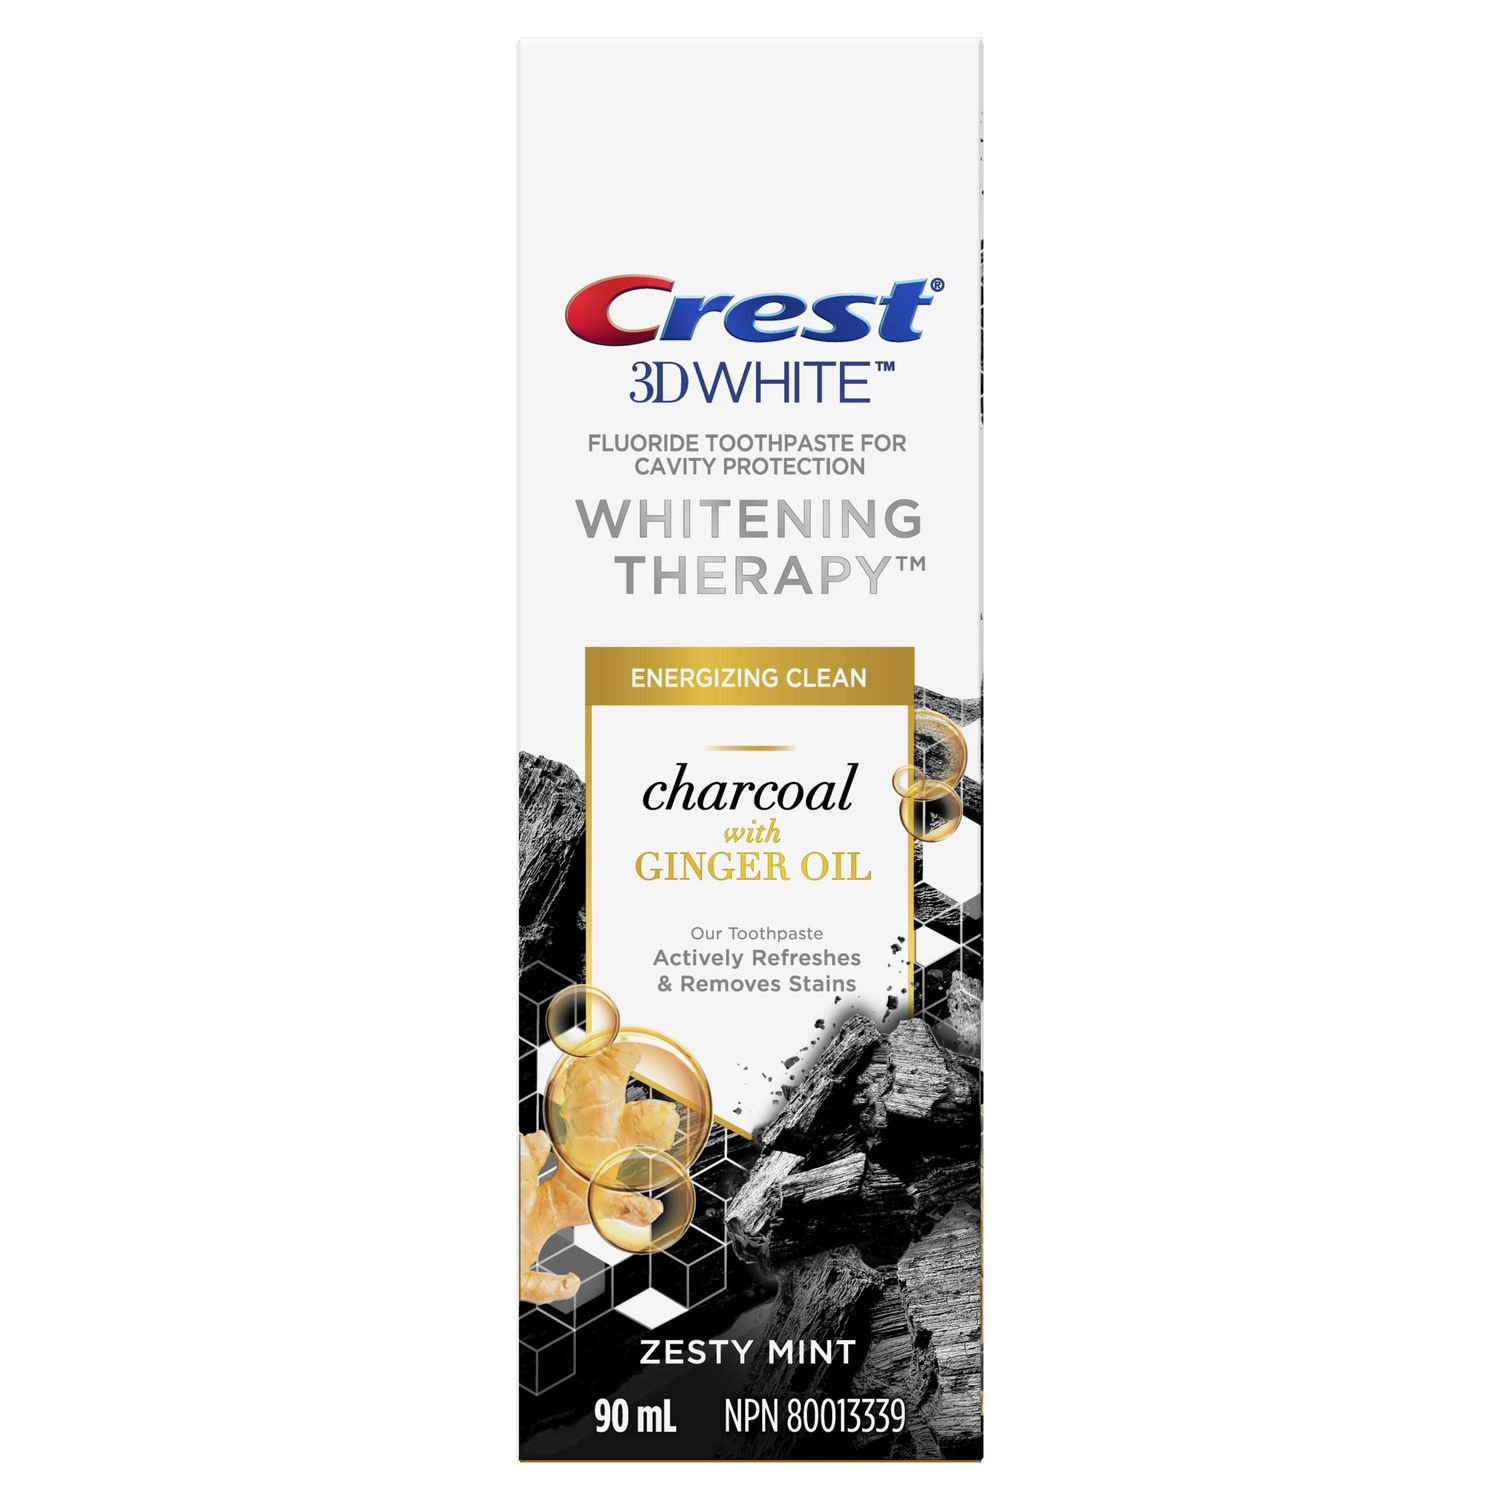 Crest 3D White Whitening Therapy Toothpaste, Charcoal with Ginger Oil